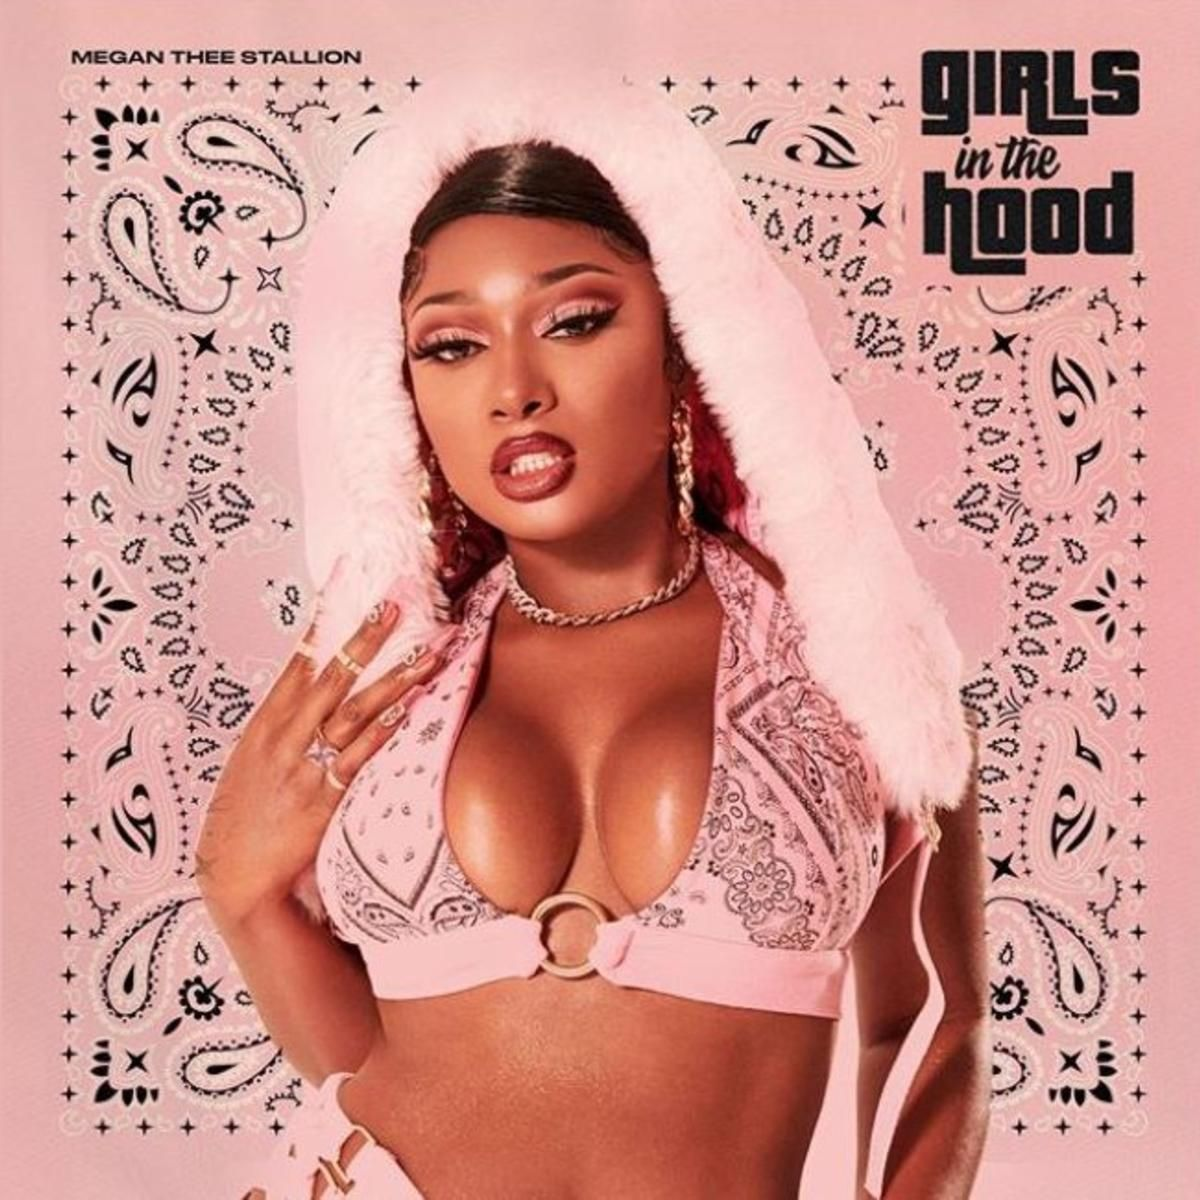 Girls In The Hood Megan Thee Stallion In 2020 Music Album Cover Bad Girl Aesthetic Female Rappers